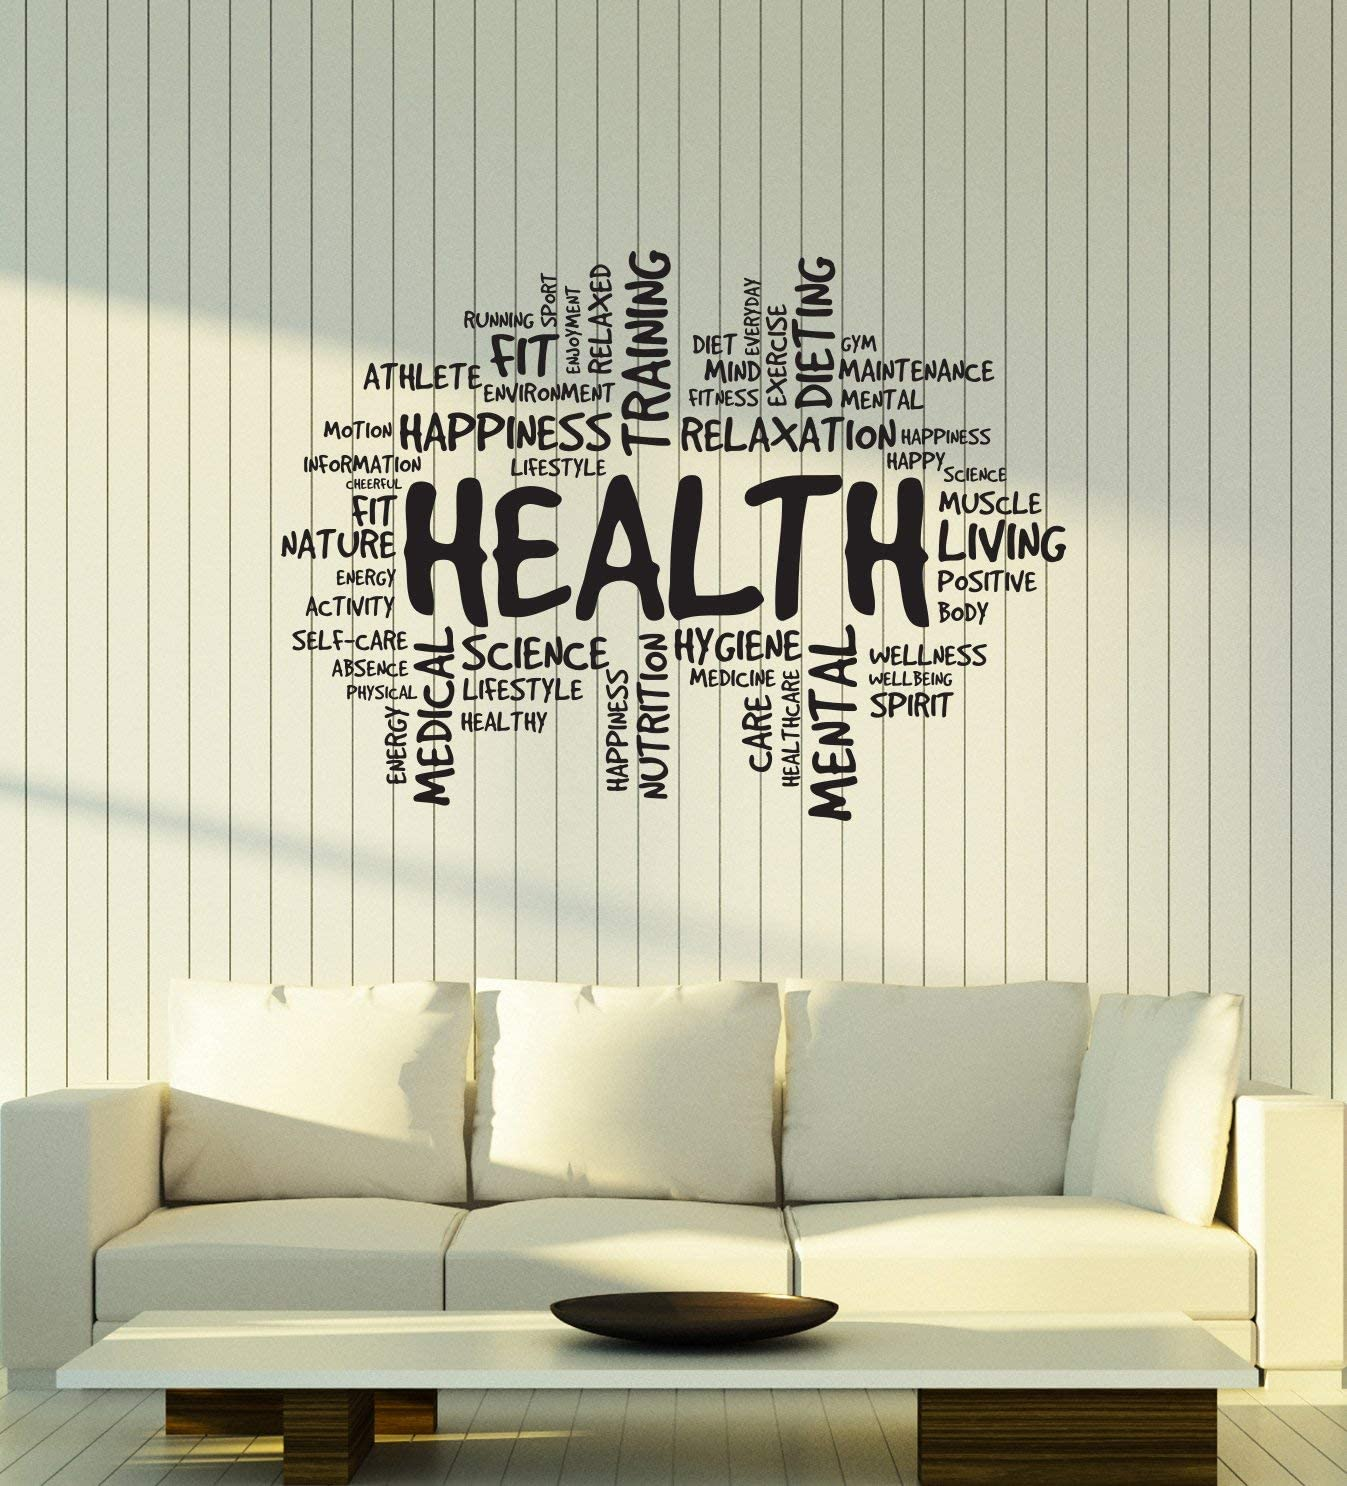 Vinyl Wall Decal Health Words Cloud Medical Room Relax Spa Relaxation Stickers Mural Large Decor (ig6159) Black